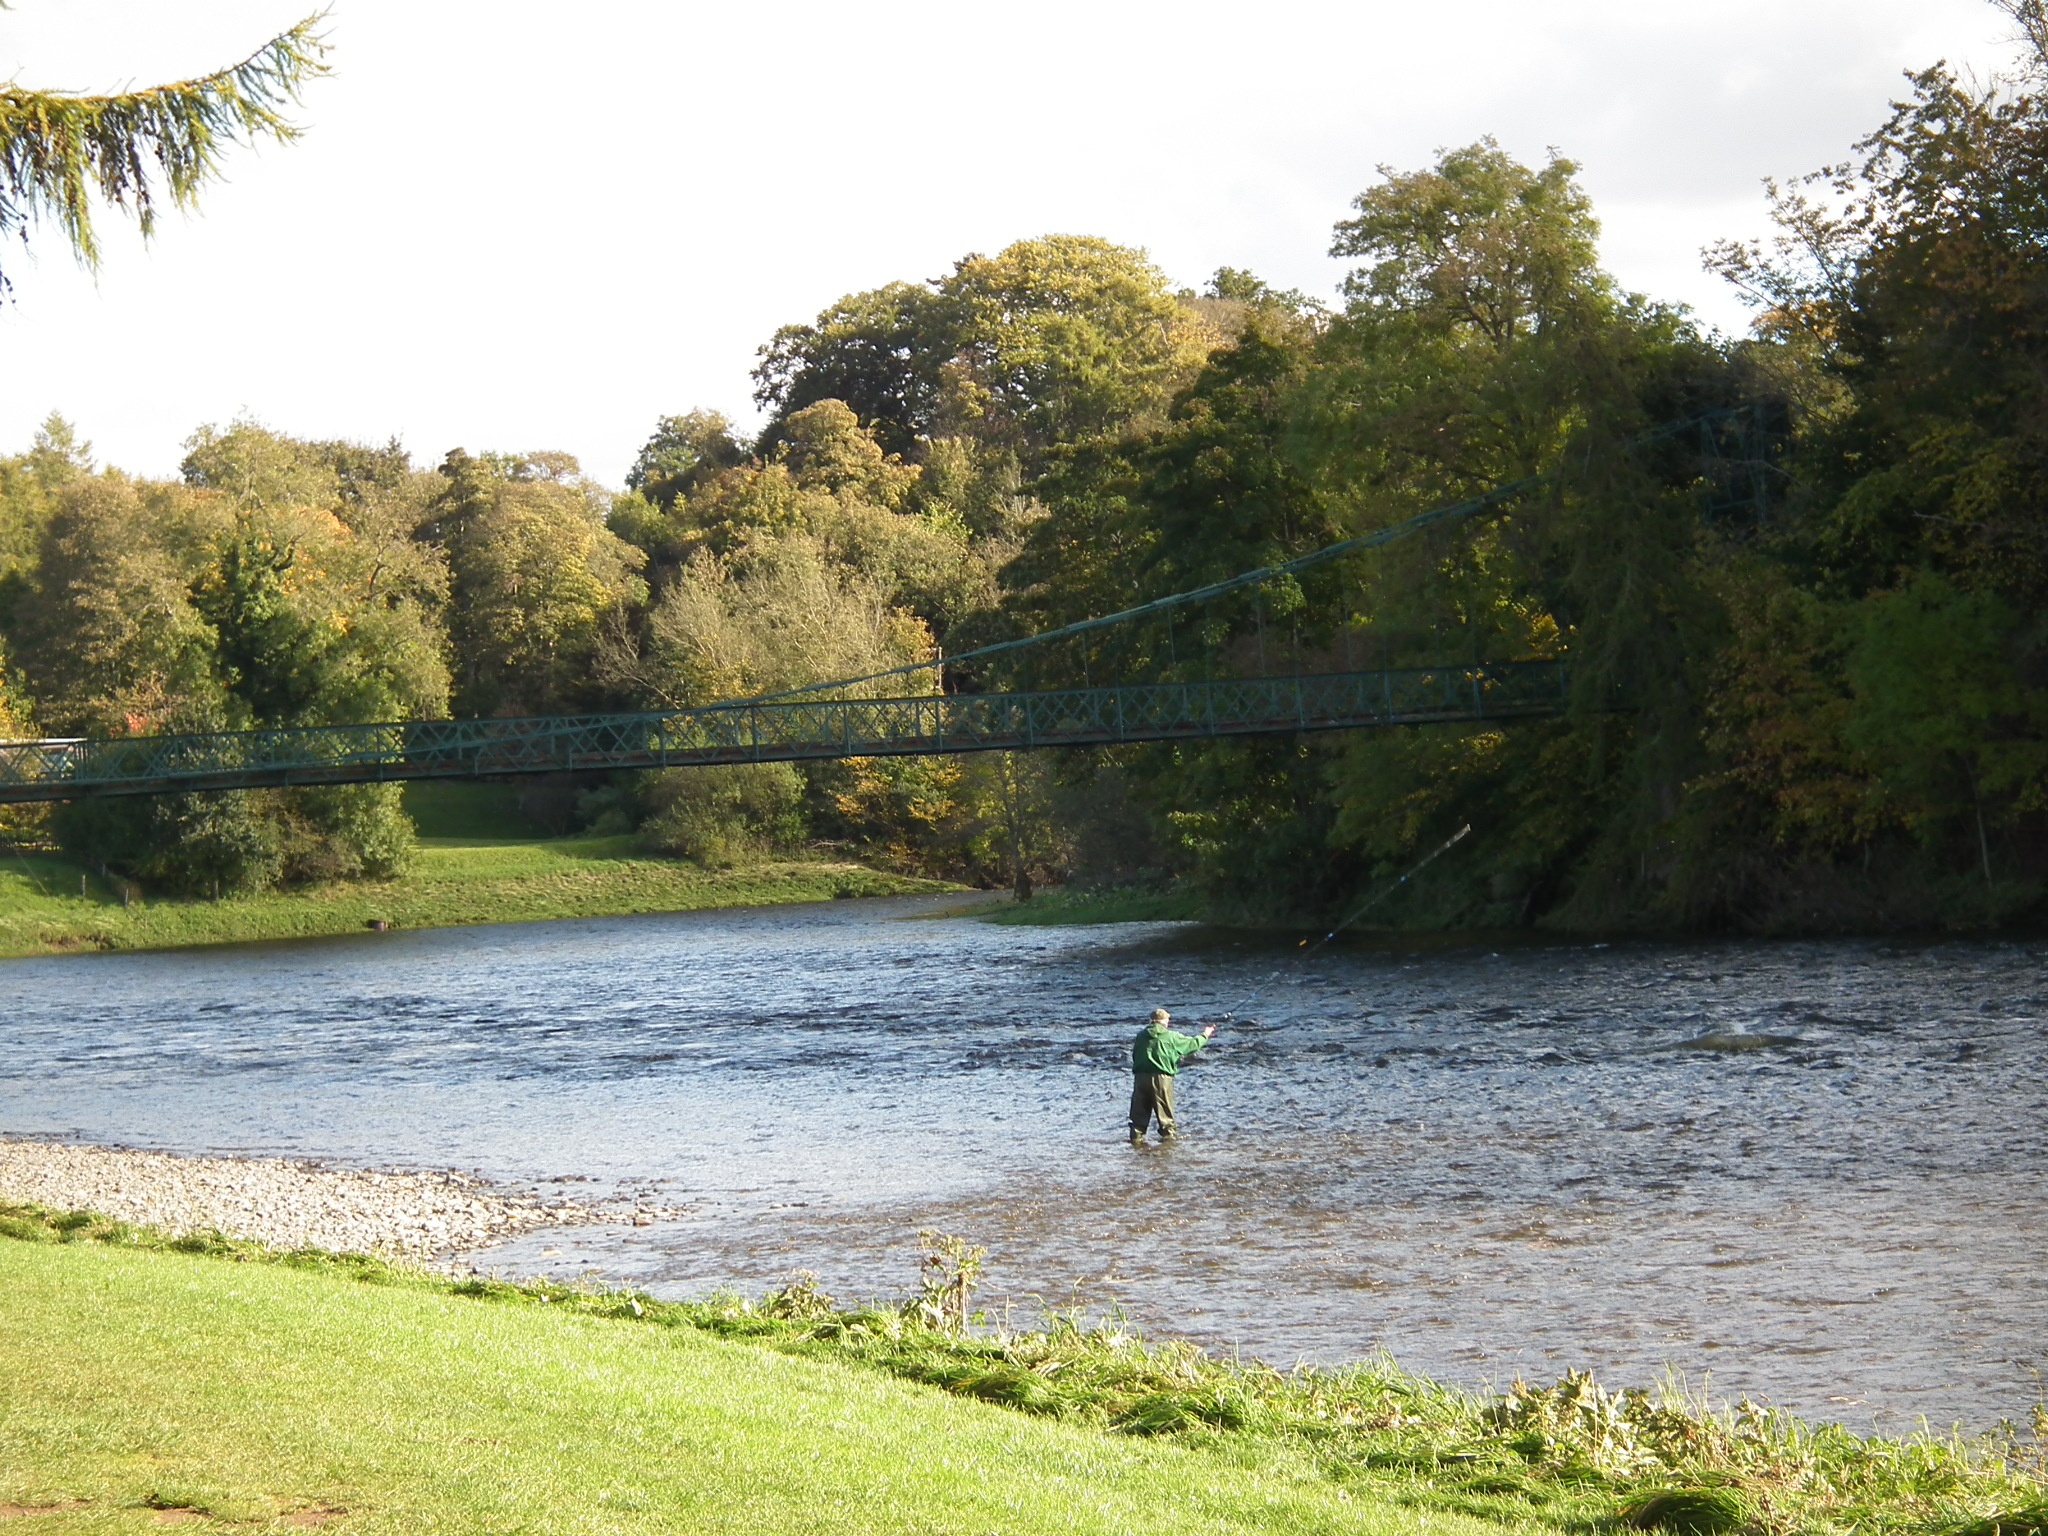 Flyfishing on the River Tweed